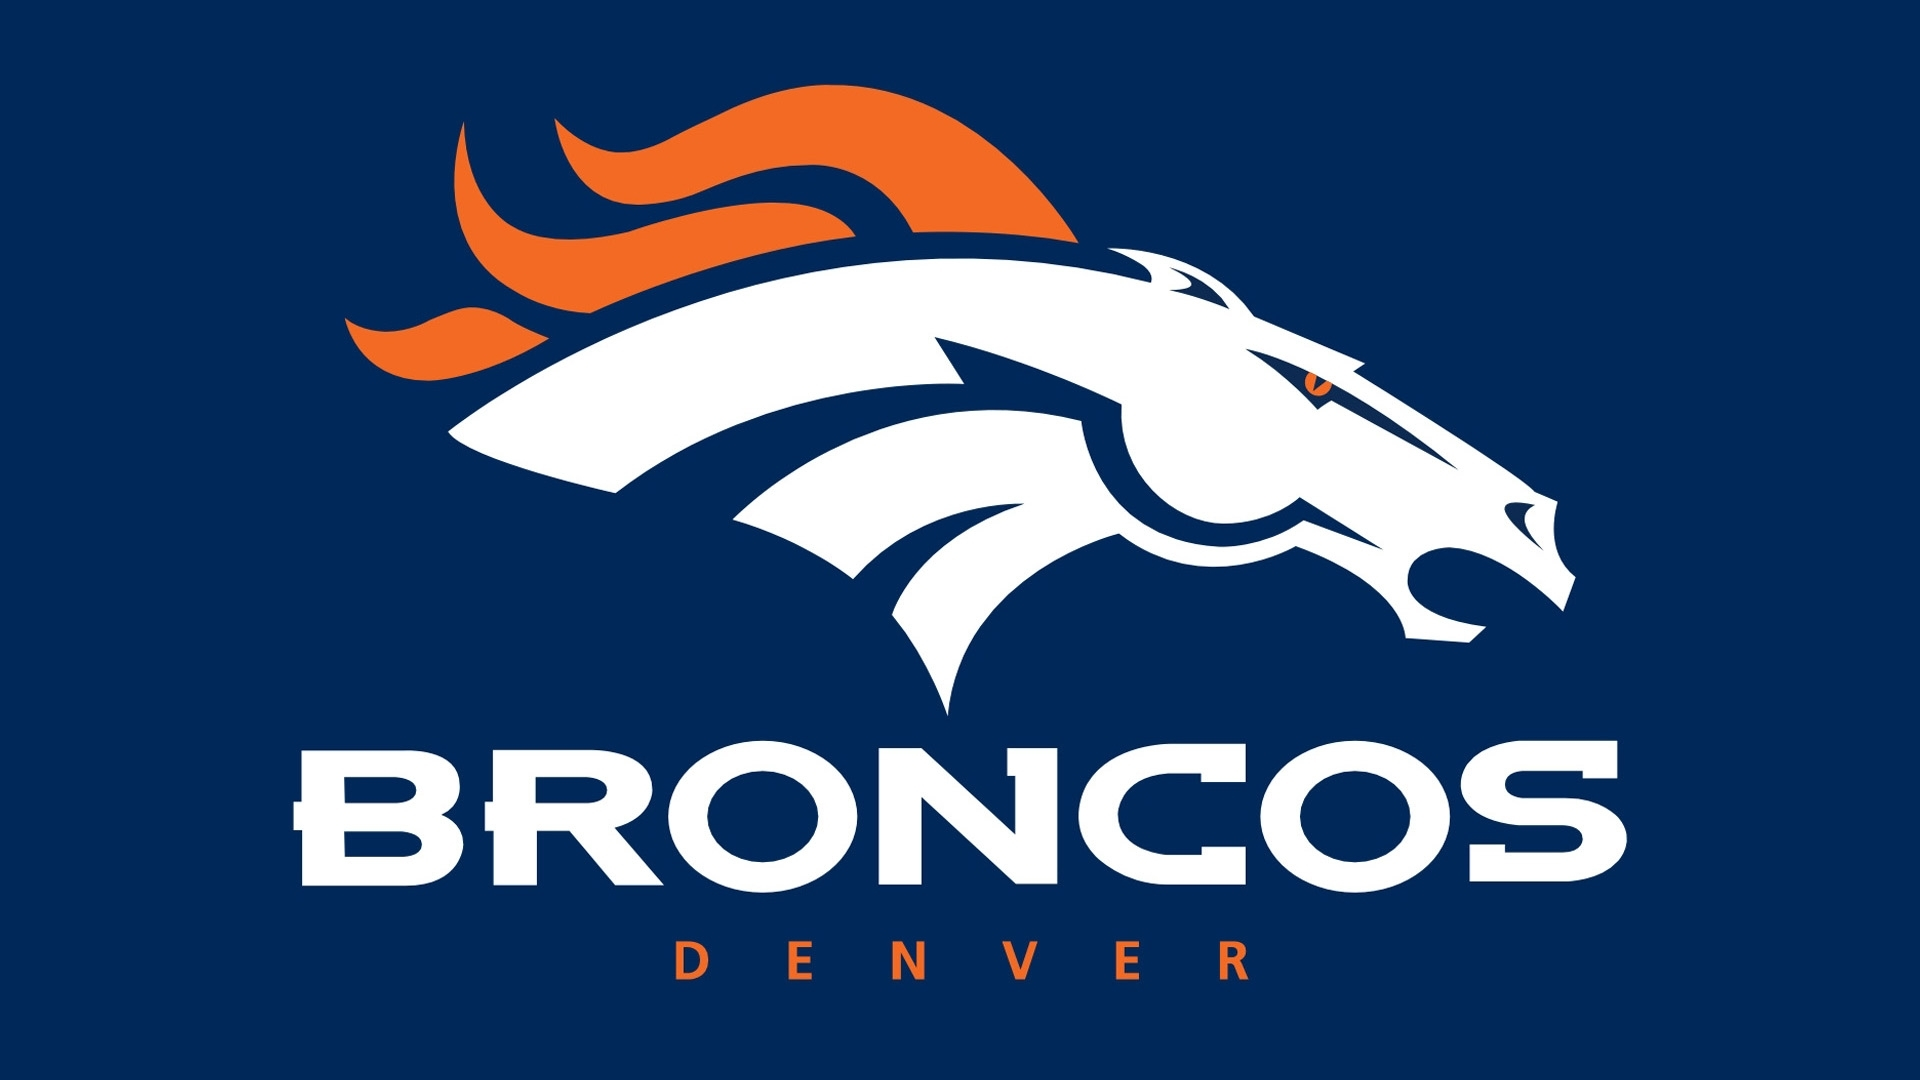 denver broncos horse logo 1920x1080 168 hd photo